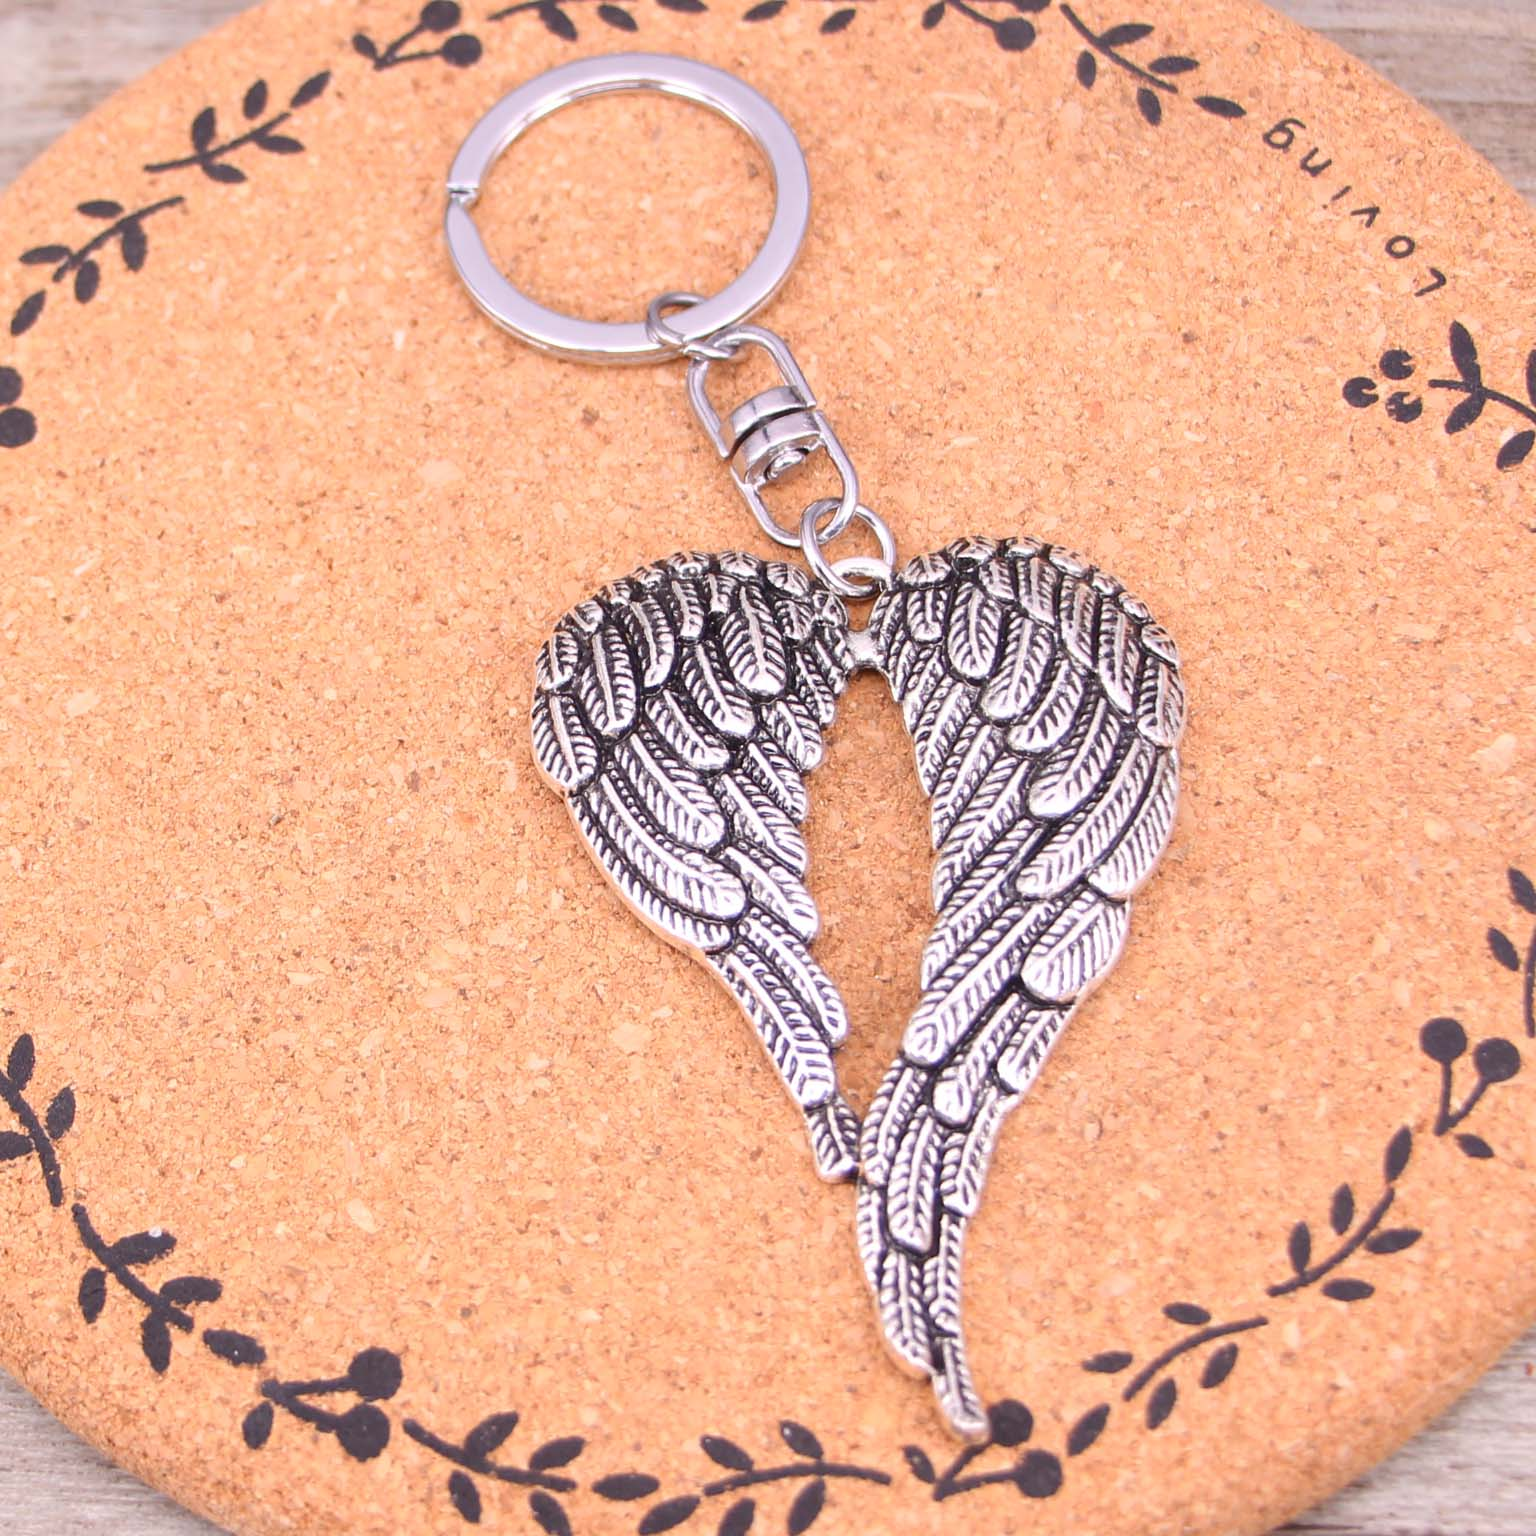 50pcs Hot sale New key chain key ring silver plated angel wings keychain for car metal